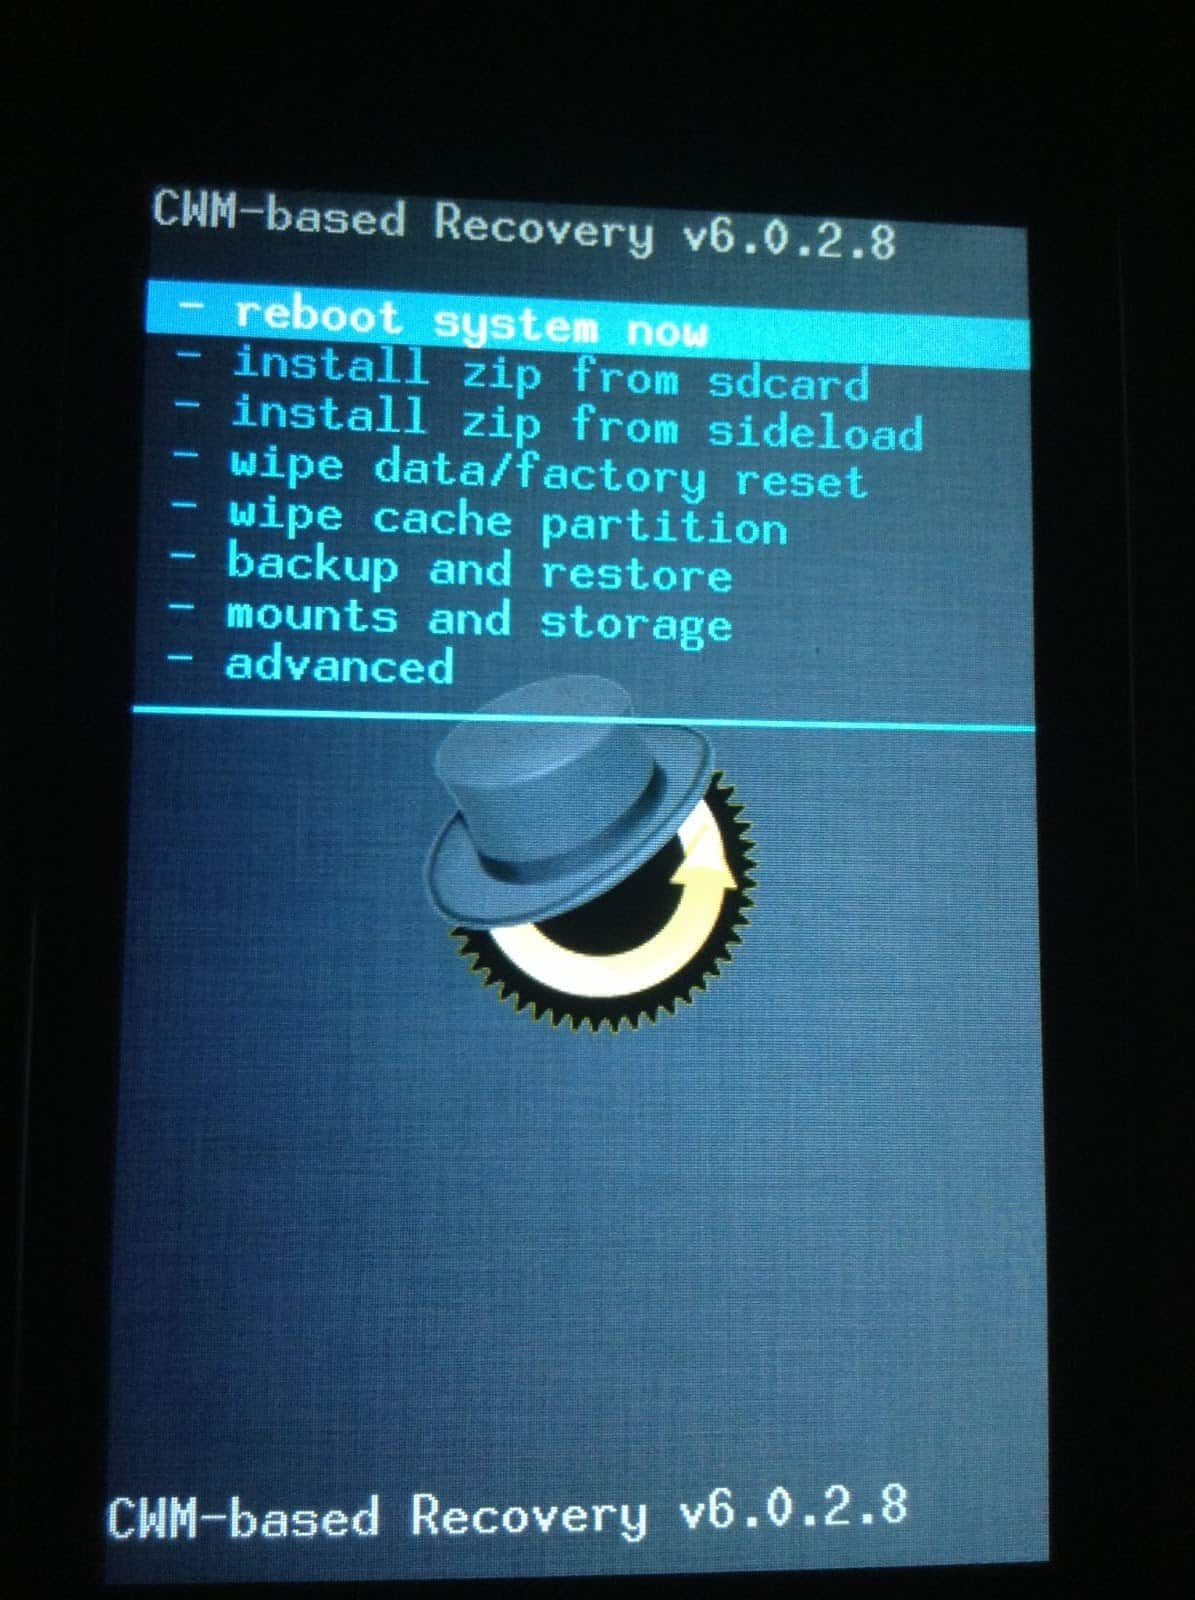 Samsung Galaxy S4 Mini Vs HTC One Mini id3402 furthermore MLB 686616190 Fone Ouvido Original Samsung Galaxy S6 S5 S4 S7 Edge S8 Note  JM together with Samsung Galaxy S6 Hands Review Preview together with How To Enter Recovery Mode On The Samsung Galaxy S4 in addition Nouveaux Accessoires En Promotion Pour Smartphone Et Tablette 44353. on samsung galaxy s4 volume on